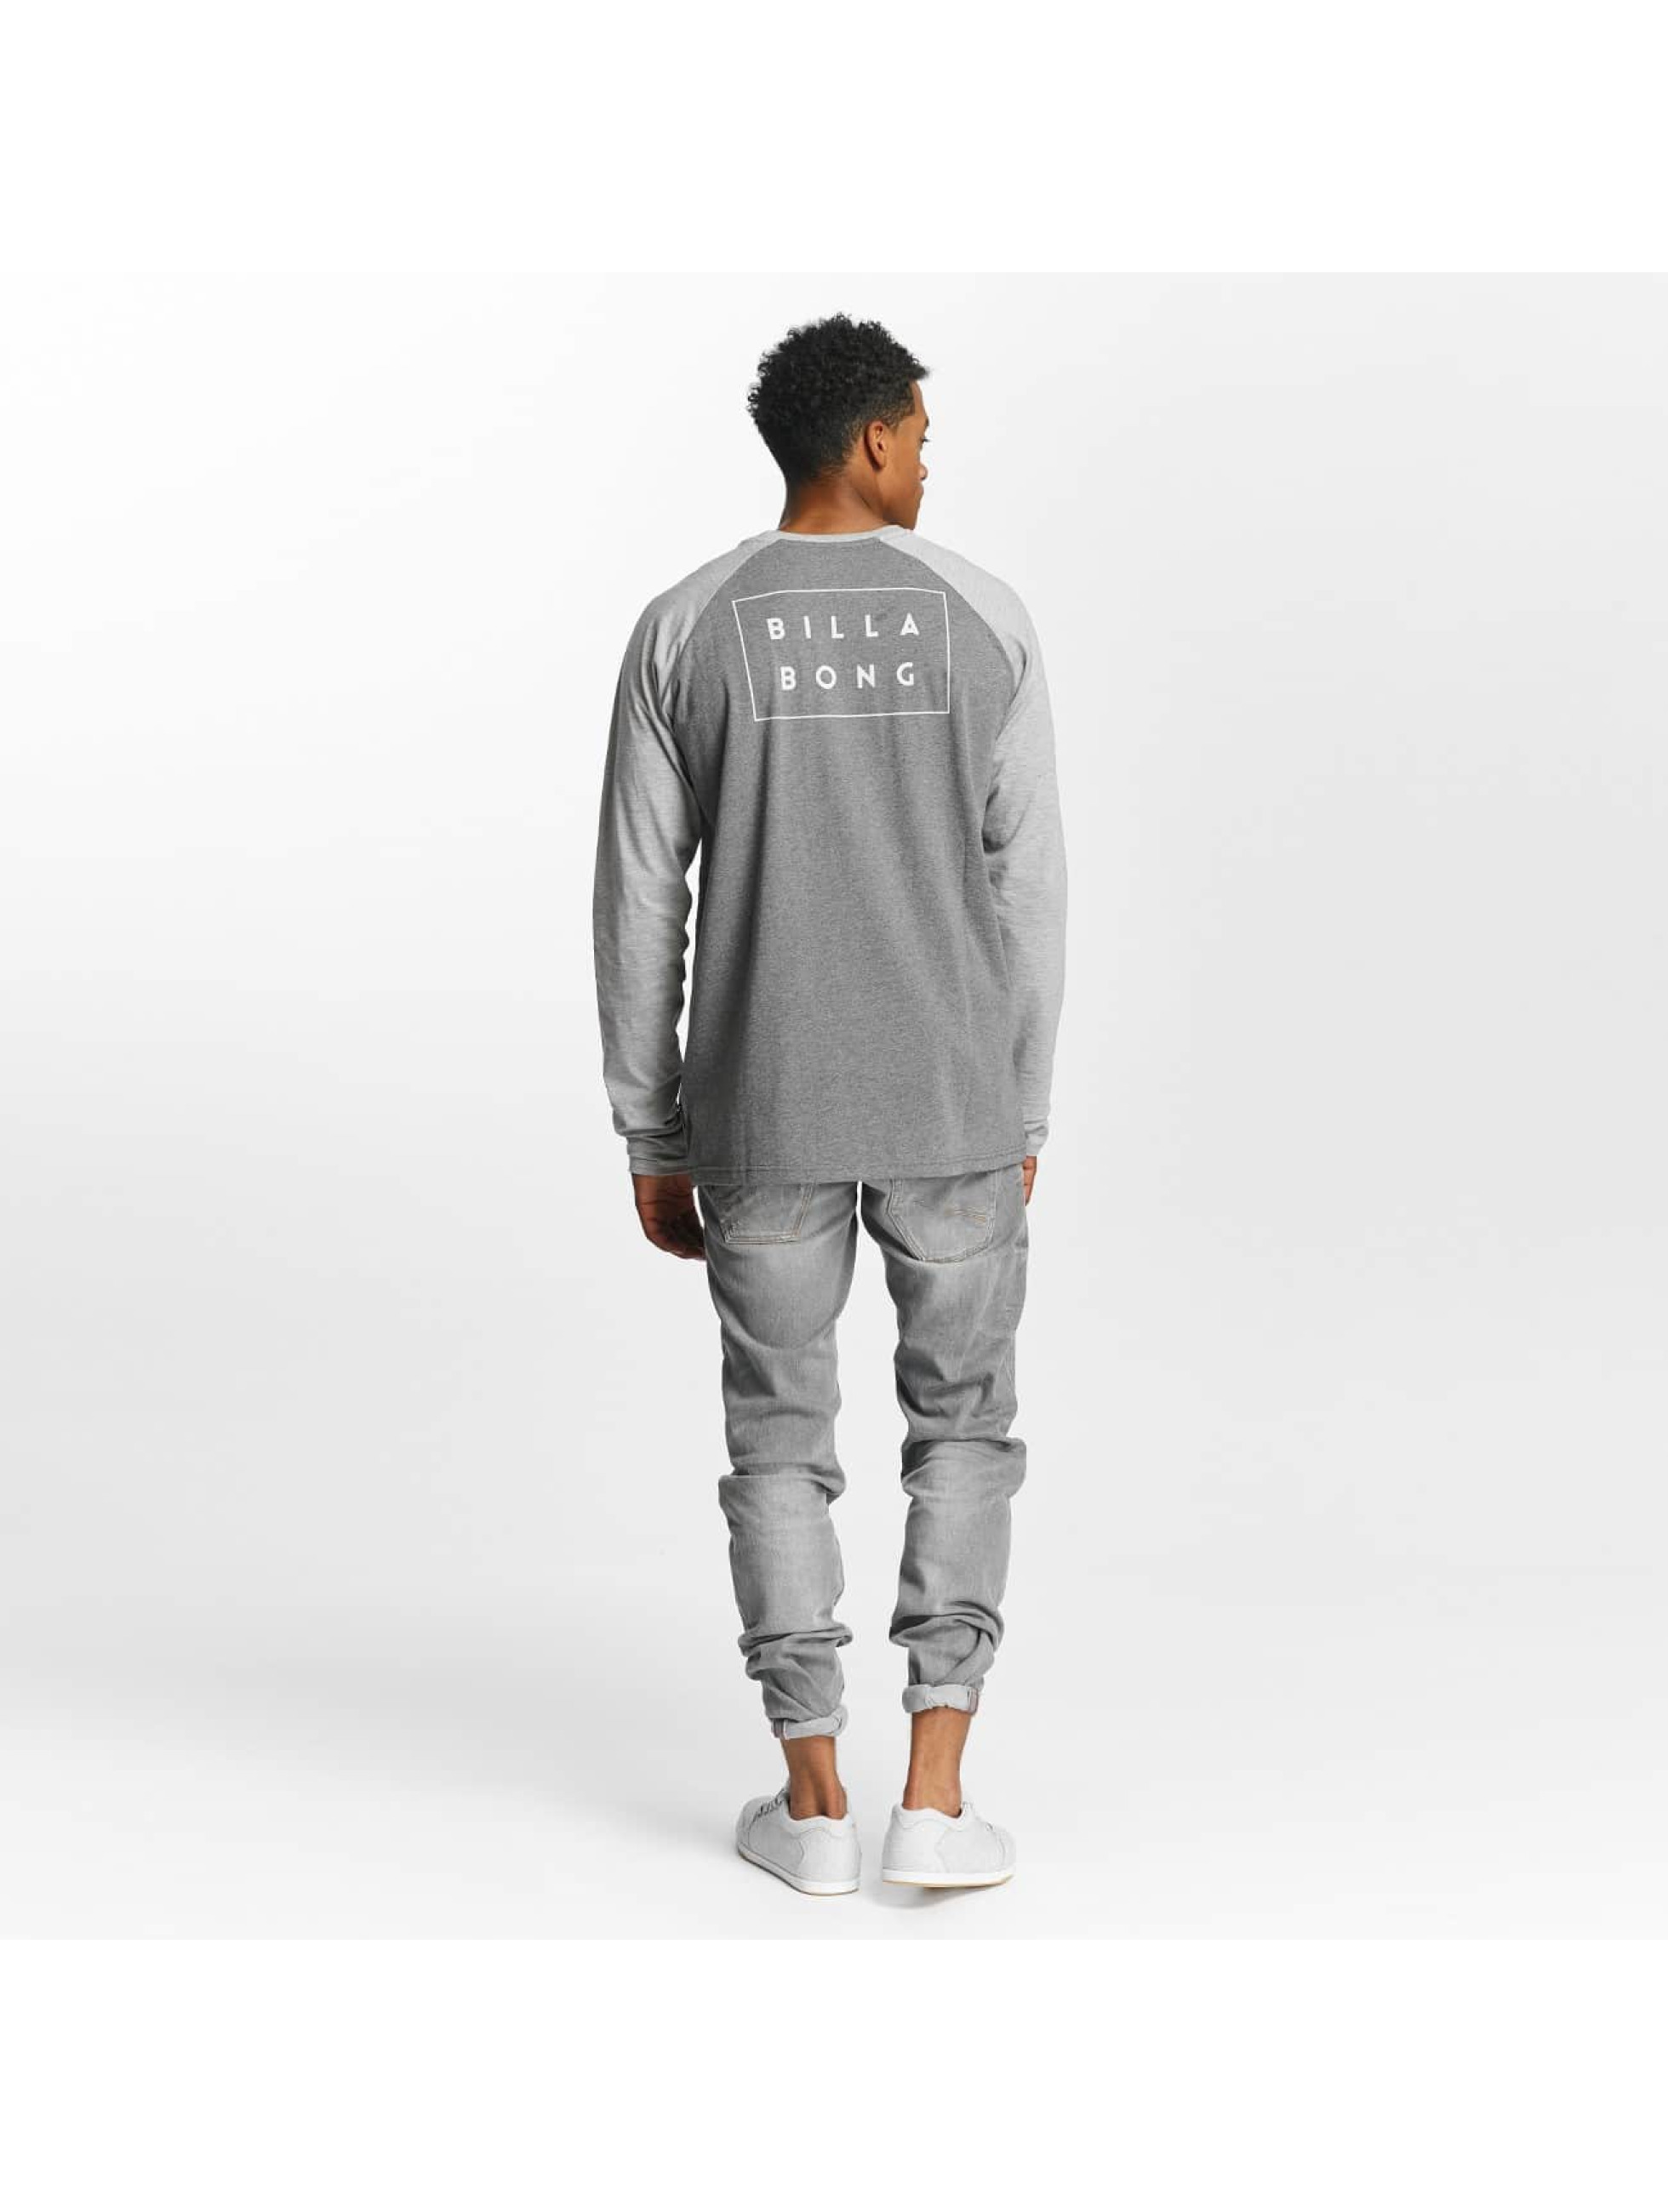 Billabong Longsleeve Die Cut grau